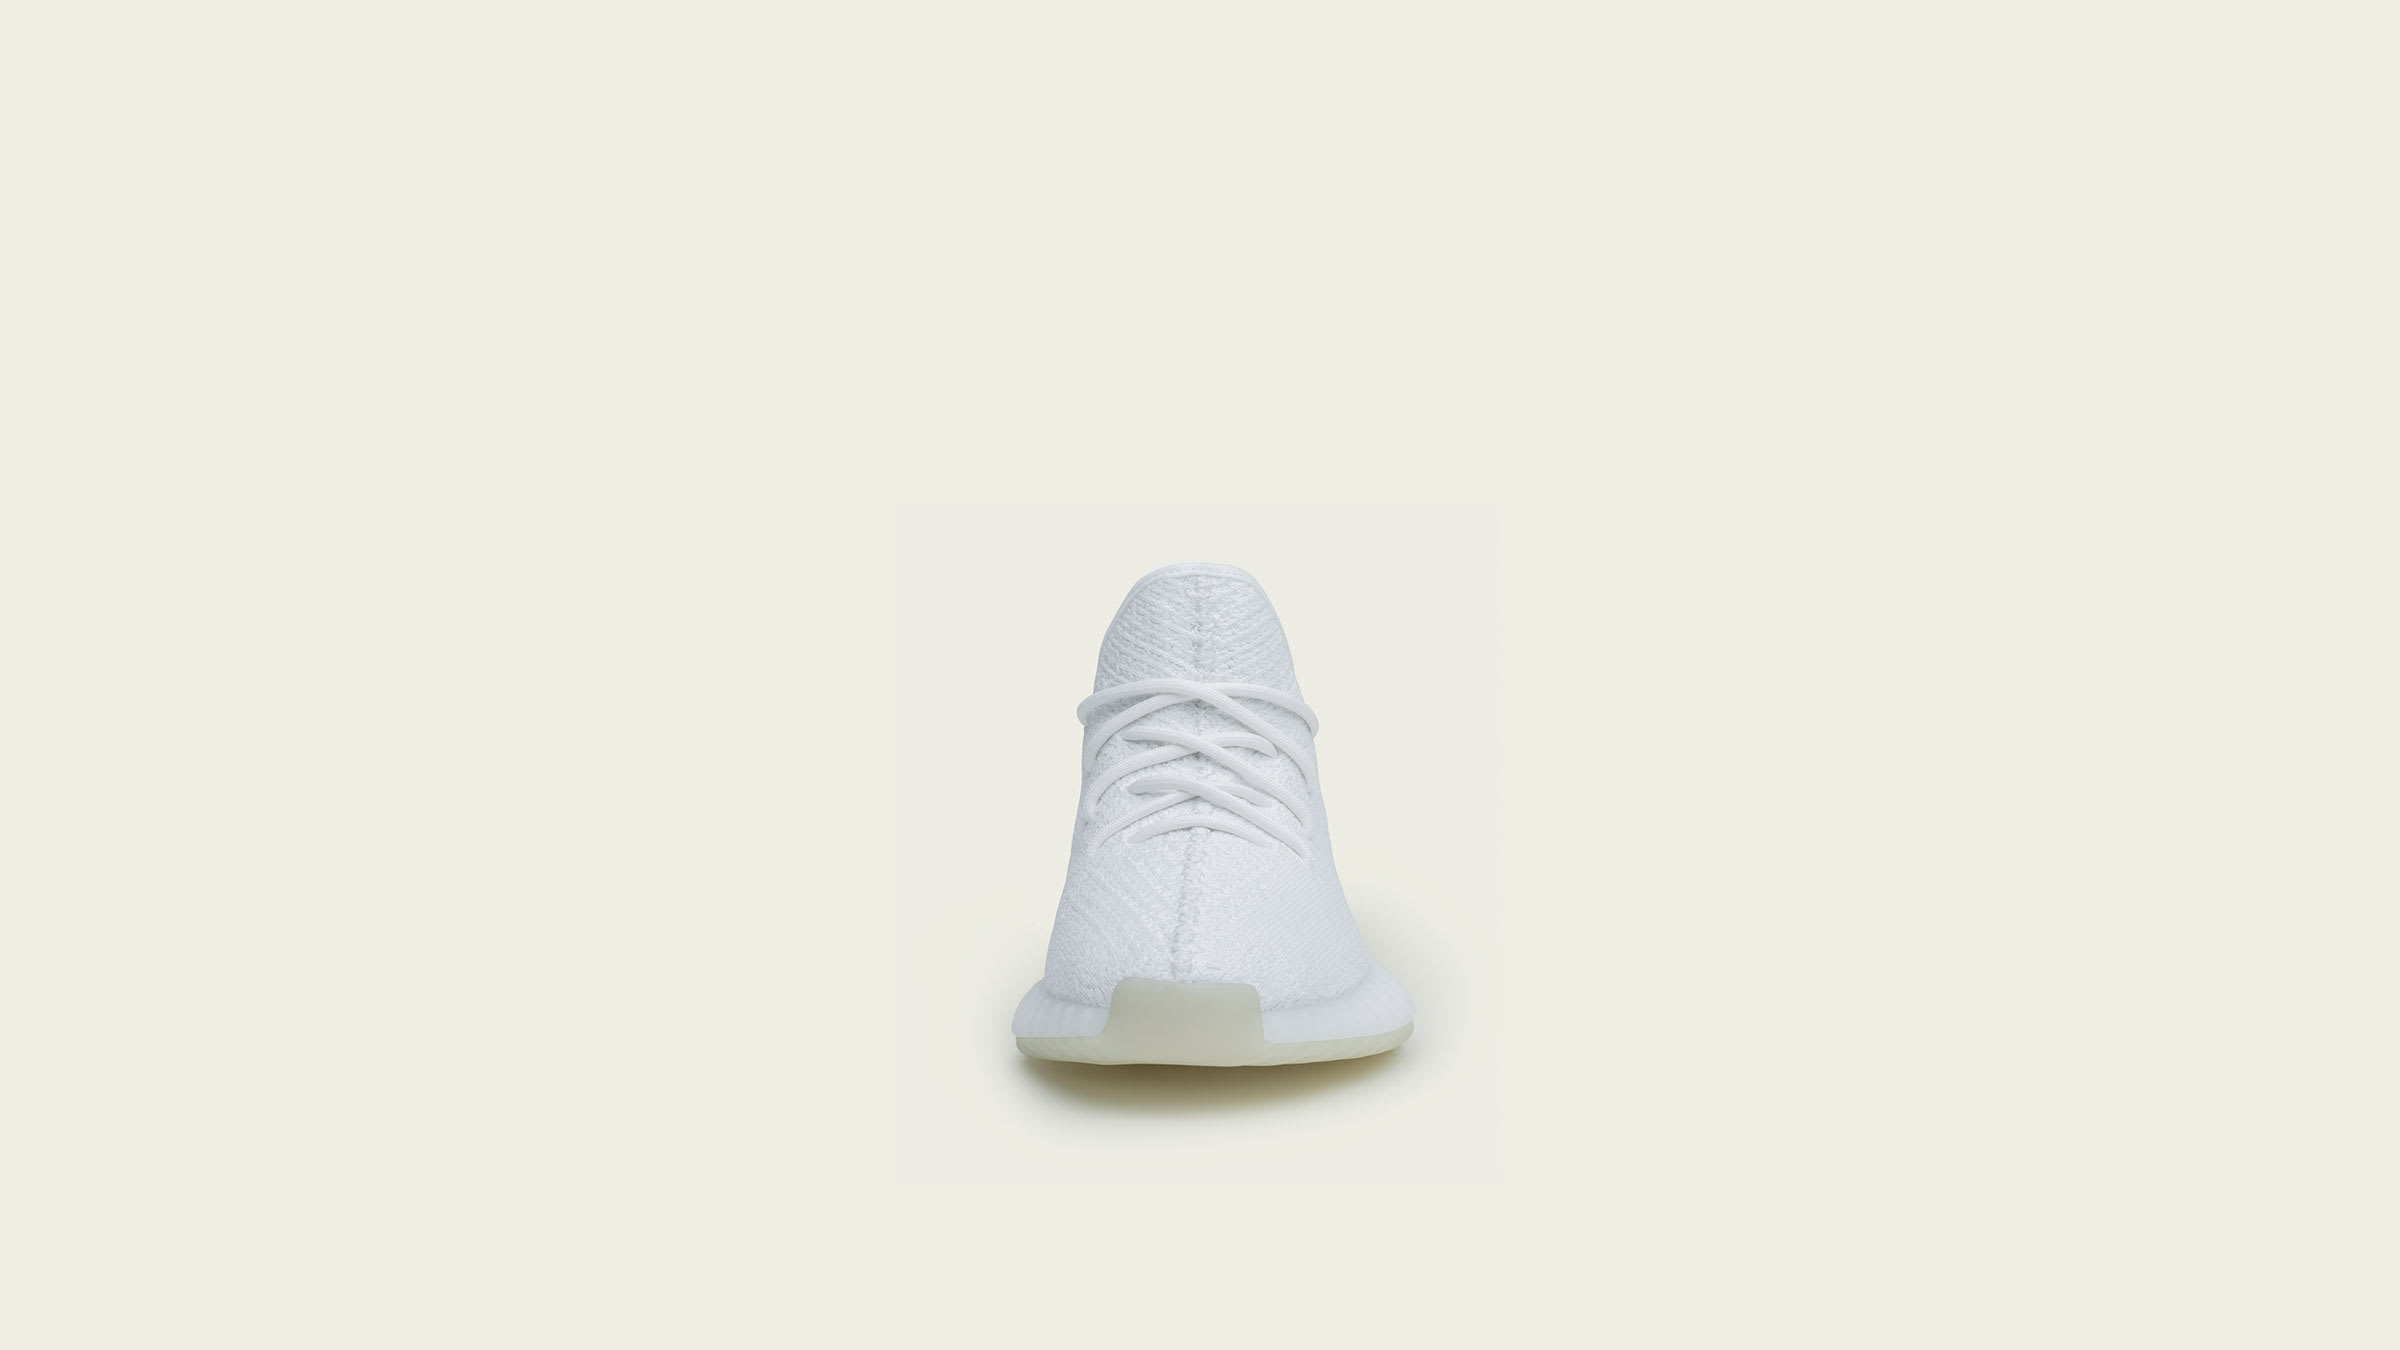 fc183eae Adidas Yeezy Boost 350 V2 Infant Core White | END.